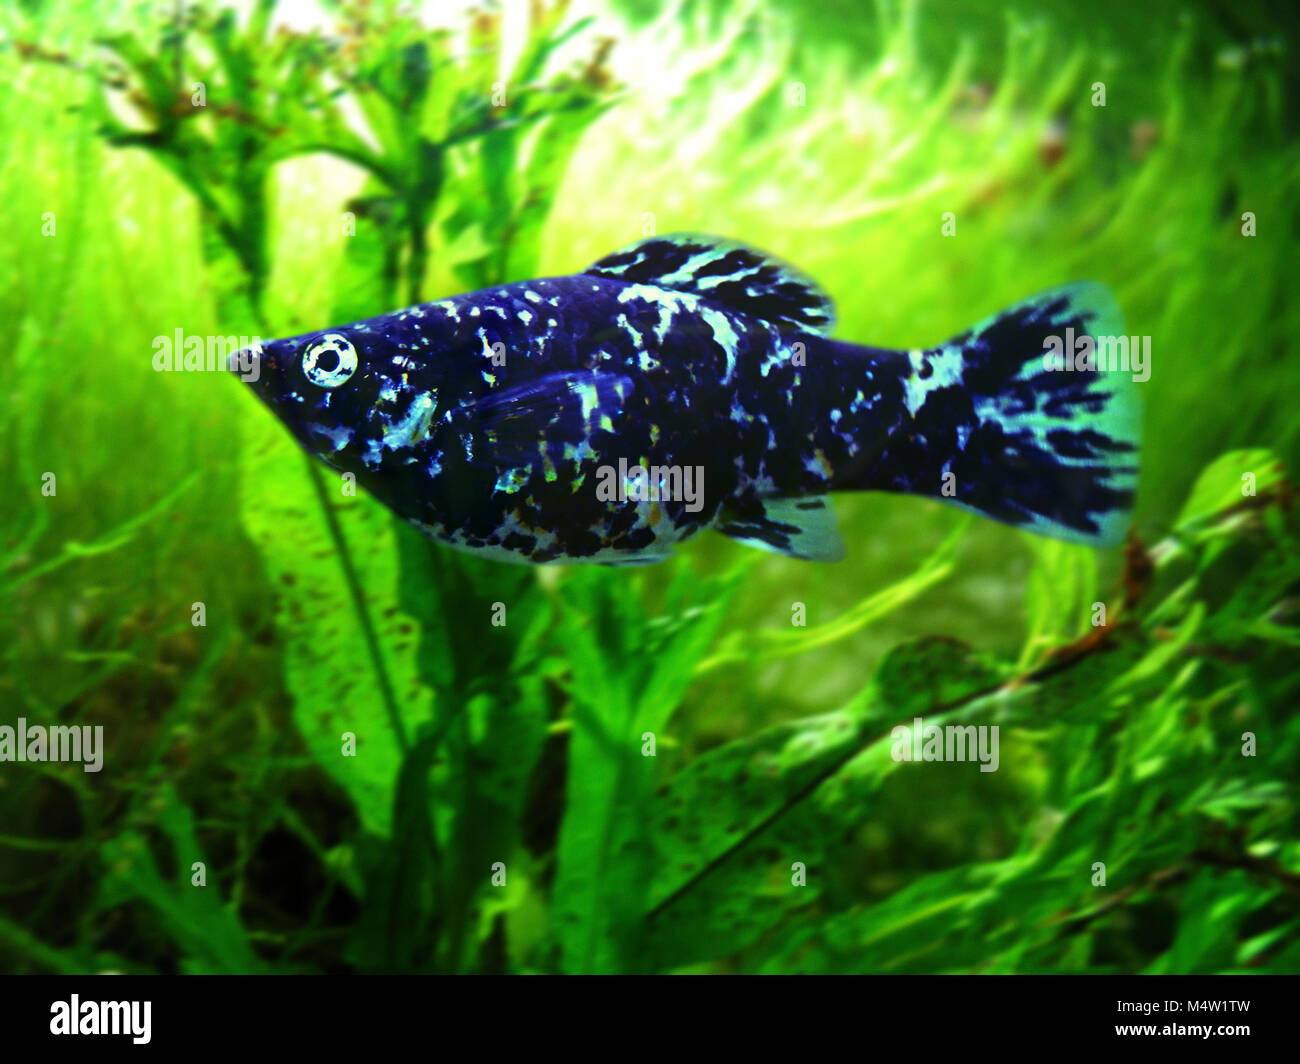 Female Short-finned Molly, Poecilia sphenops. Dalmatian variety. Mollies are strictly American fish, found particularly - Stock Image